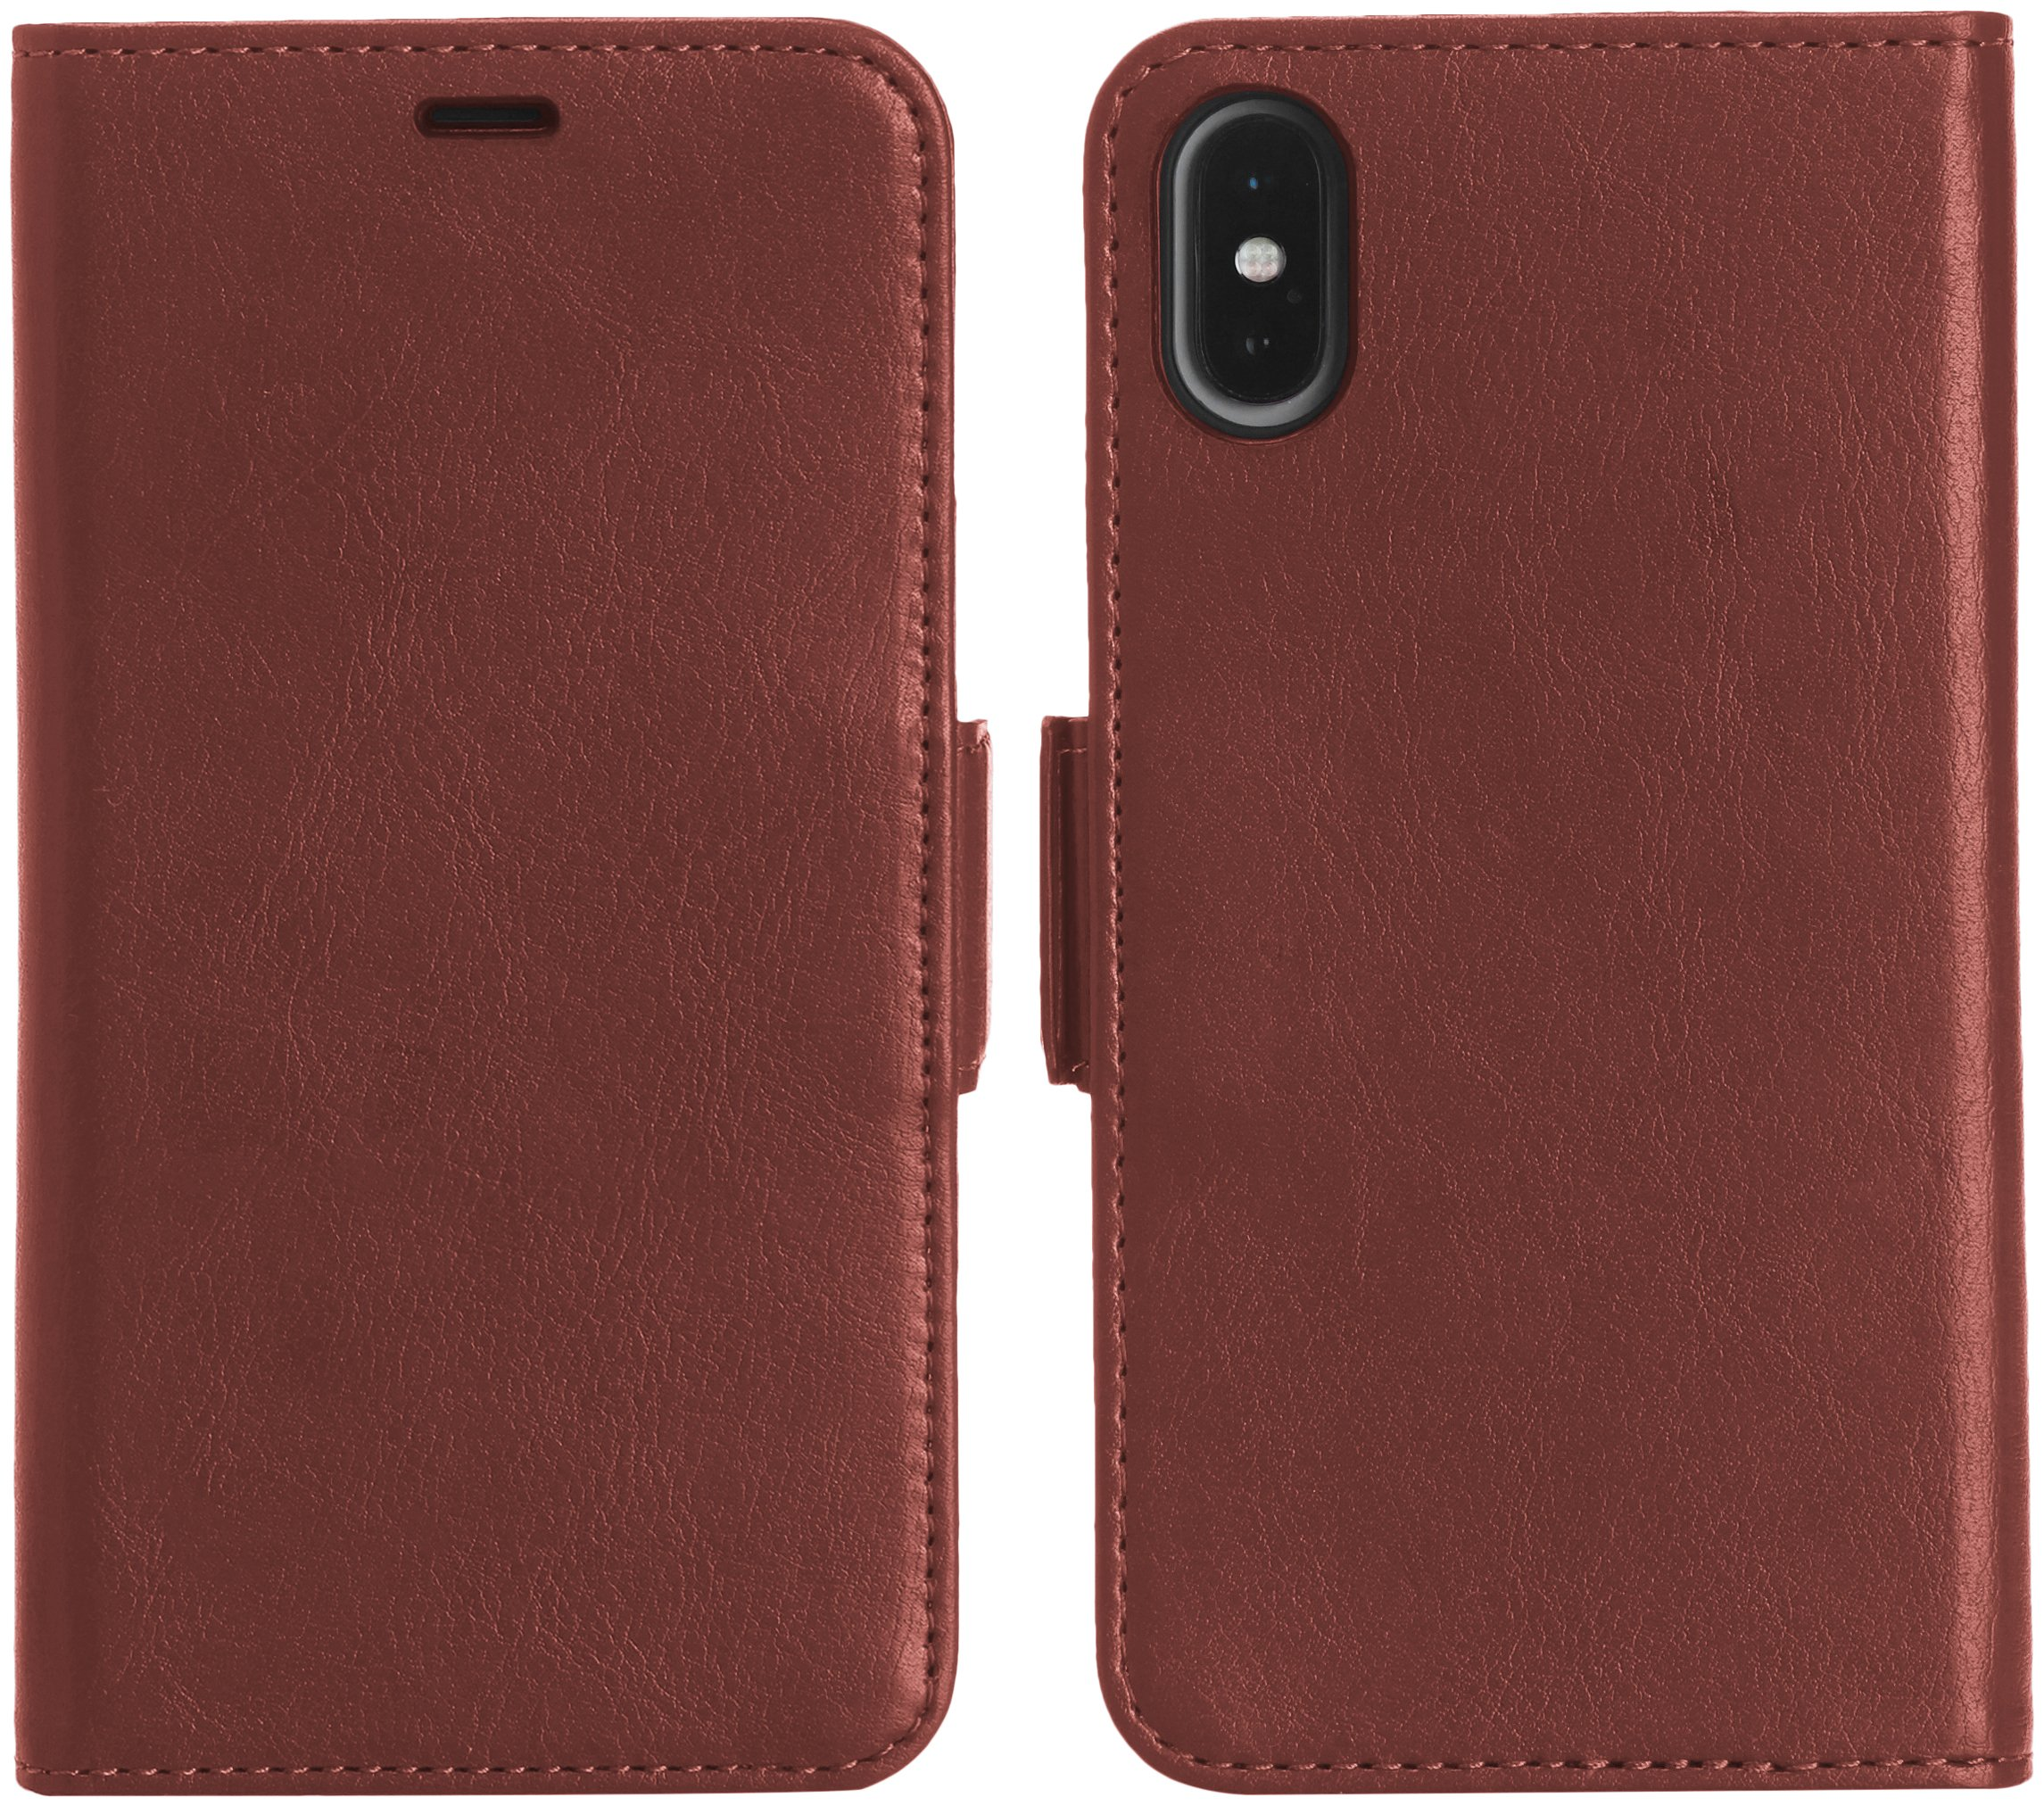 AmazonBasics iPhone X PU Leather Wallet Detachable Case, Dark Brown by AmazonBasics (Image #4)